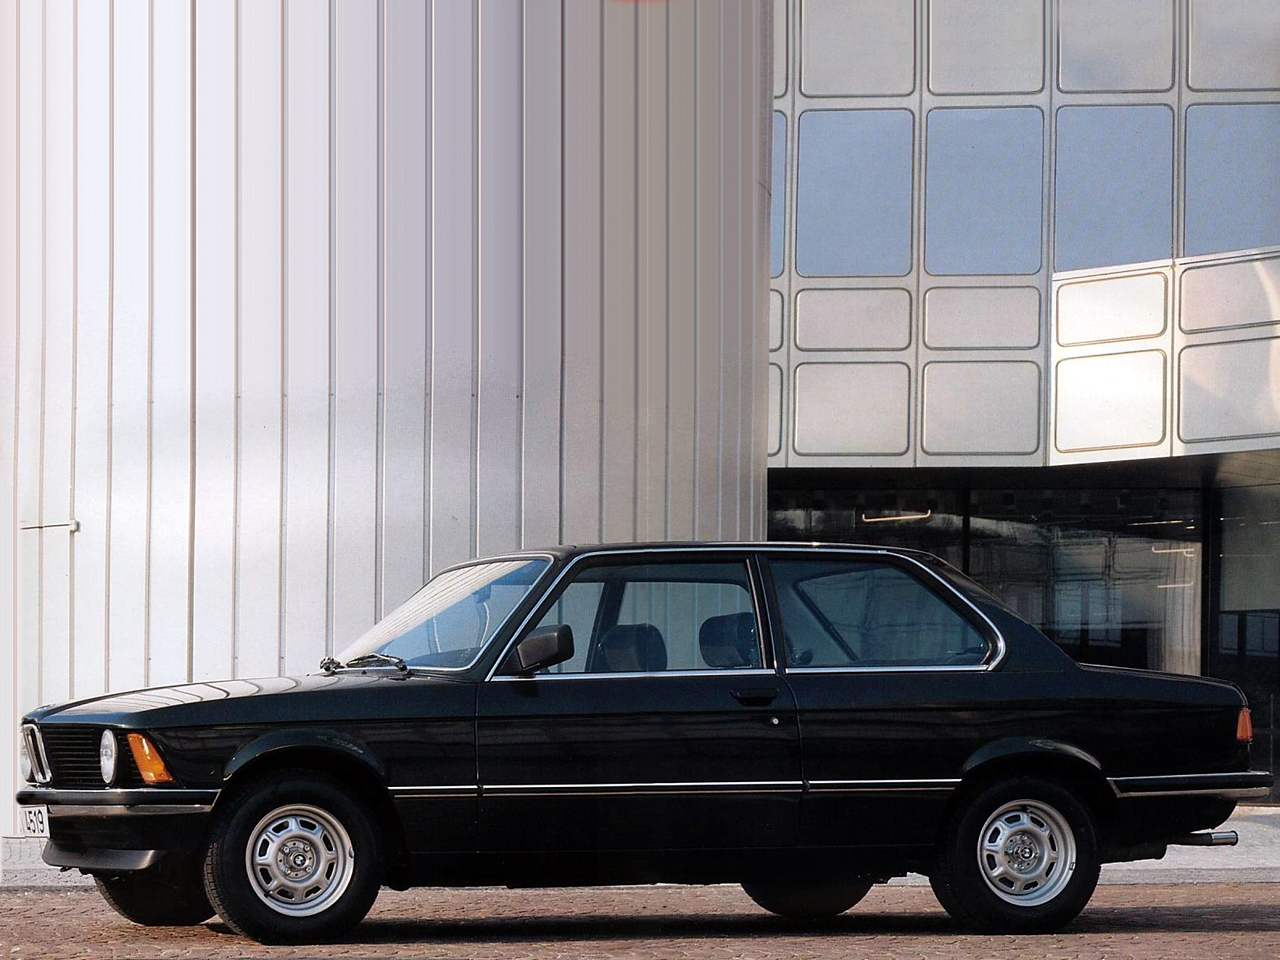 BMW 3 series 318 1975 photo - 4